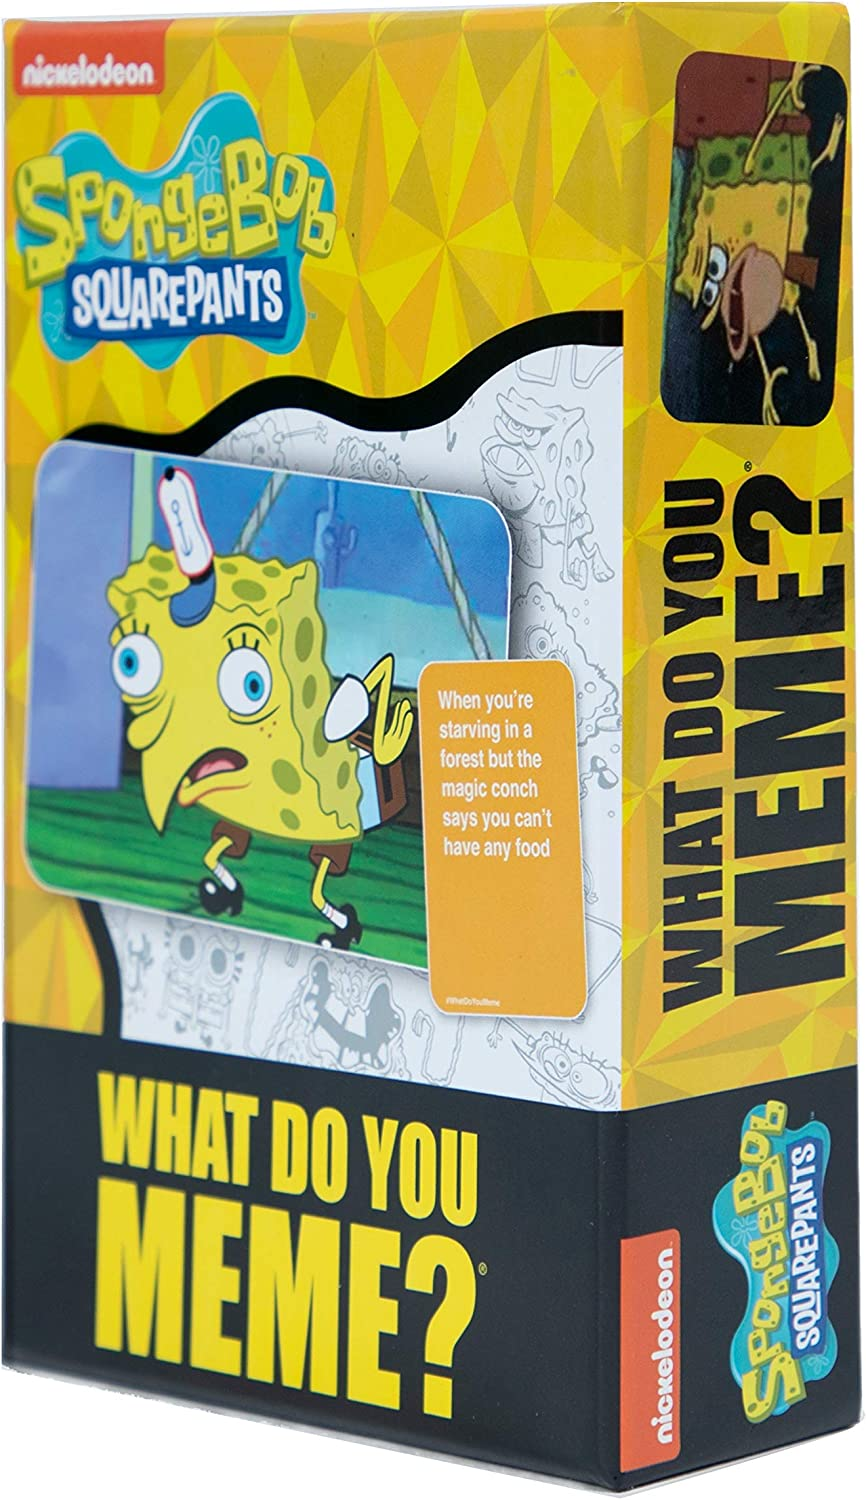 What Do You Meme? Spongebob Squarepants Deck